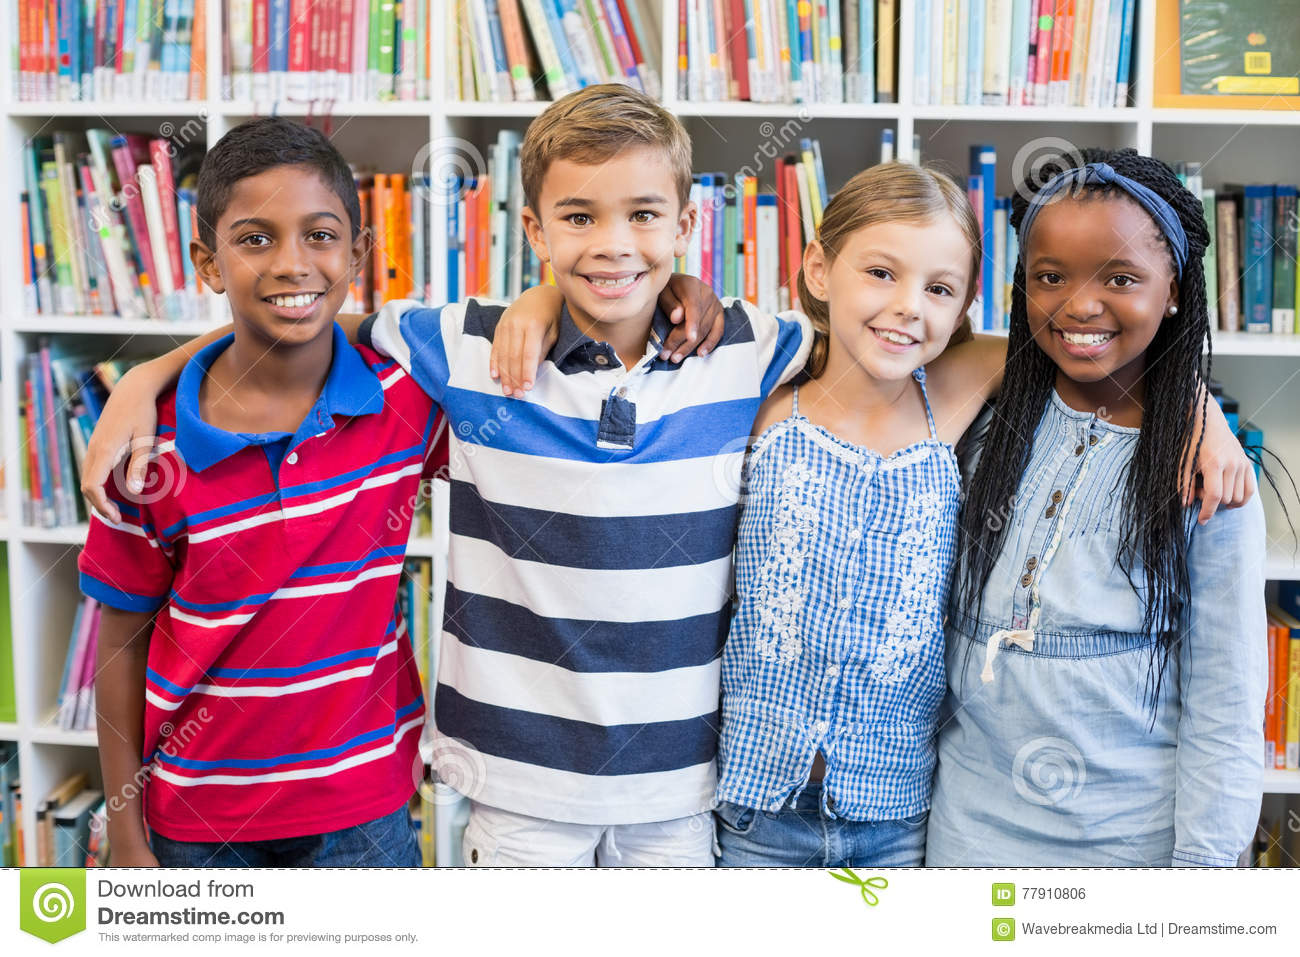 Smiling school kids standing with arm around in library